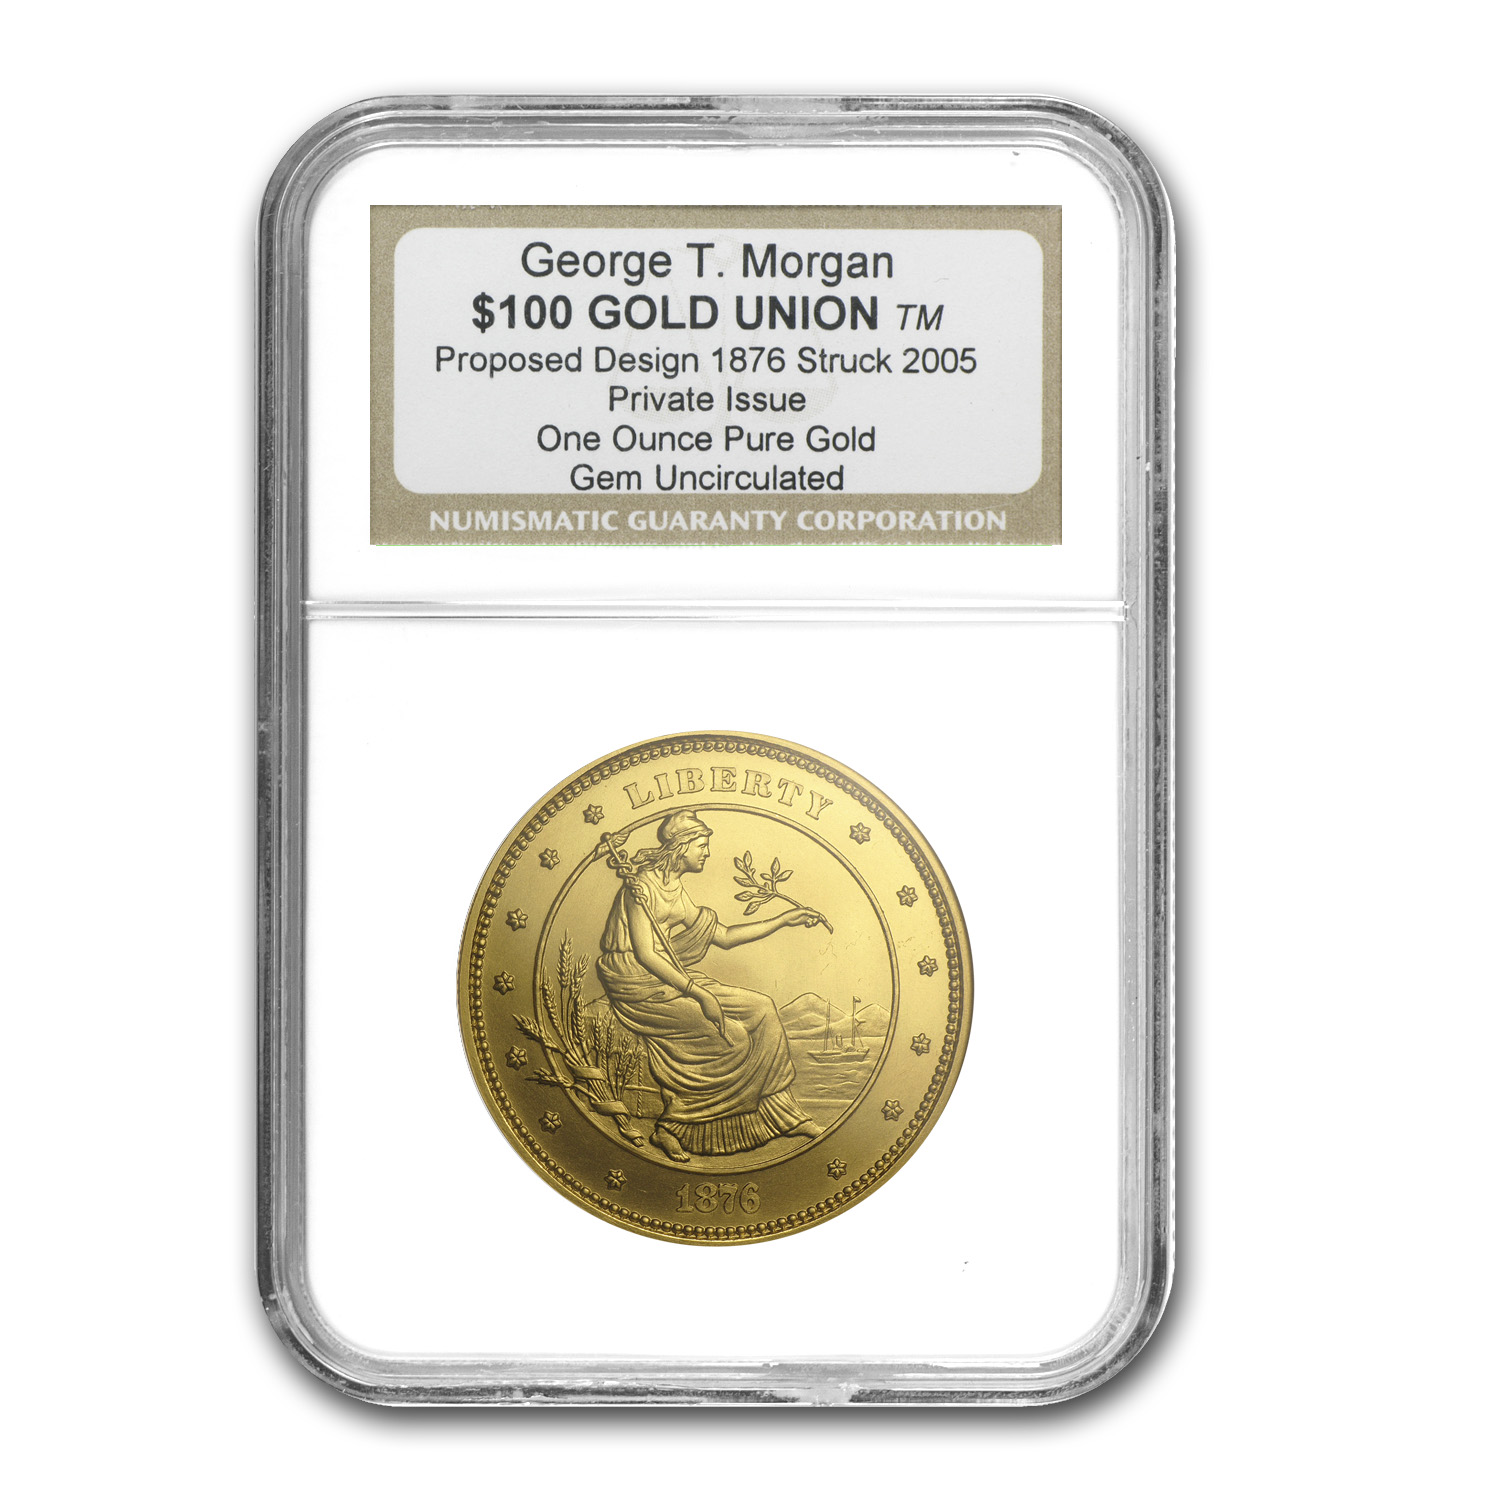 1 oz Gold Rnds - $100 Gold Union George T. Morgan (NGC, Gem Unc)